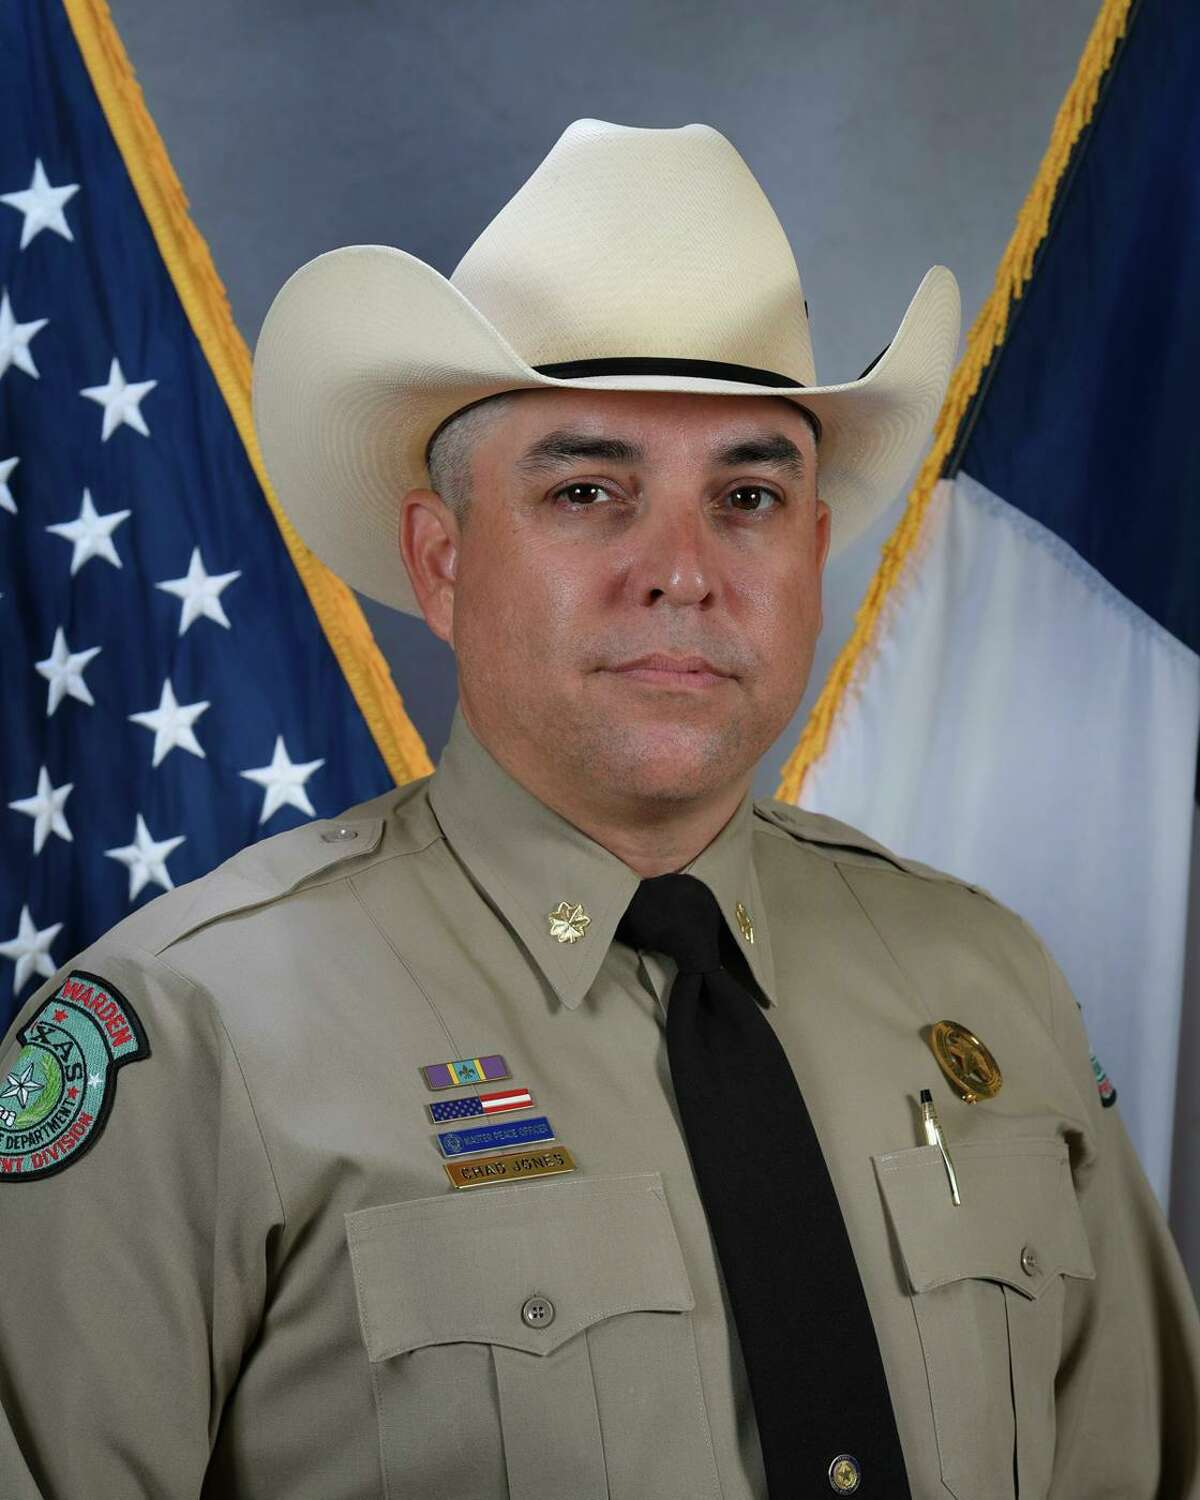 Col. Chad Jones replaced Grahame Jones as director of the Texas Parks and Wildlife Department's law enforcement division.